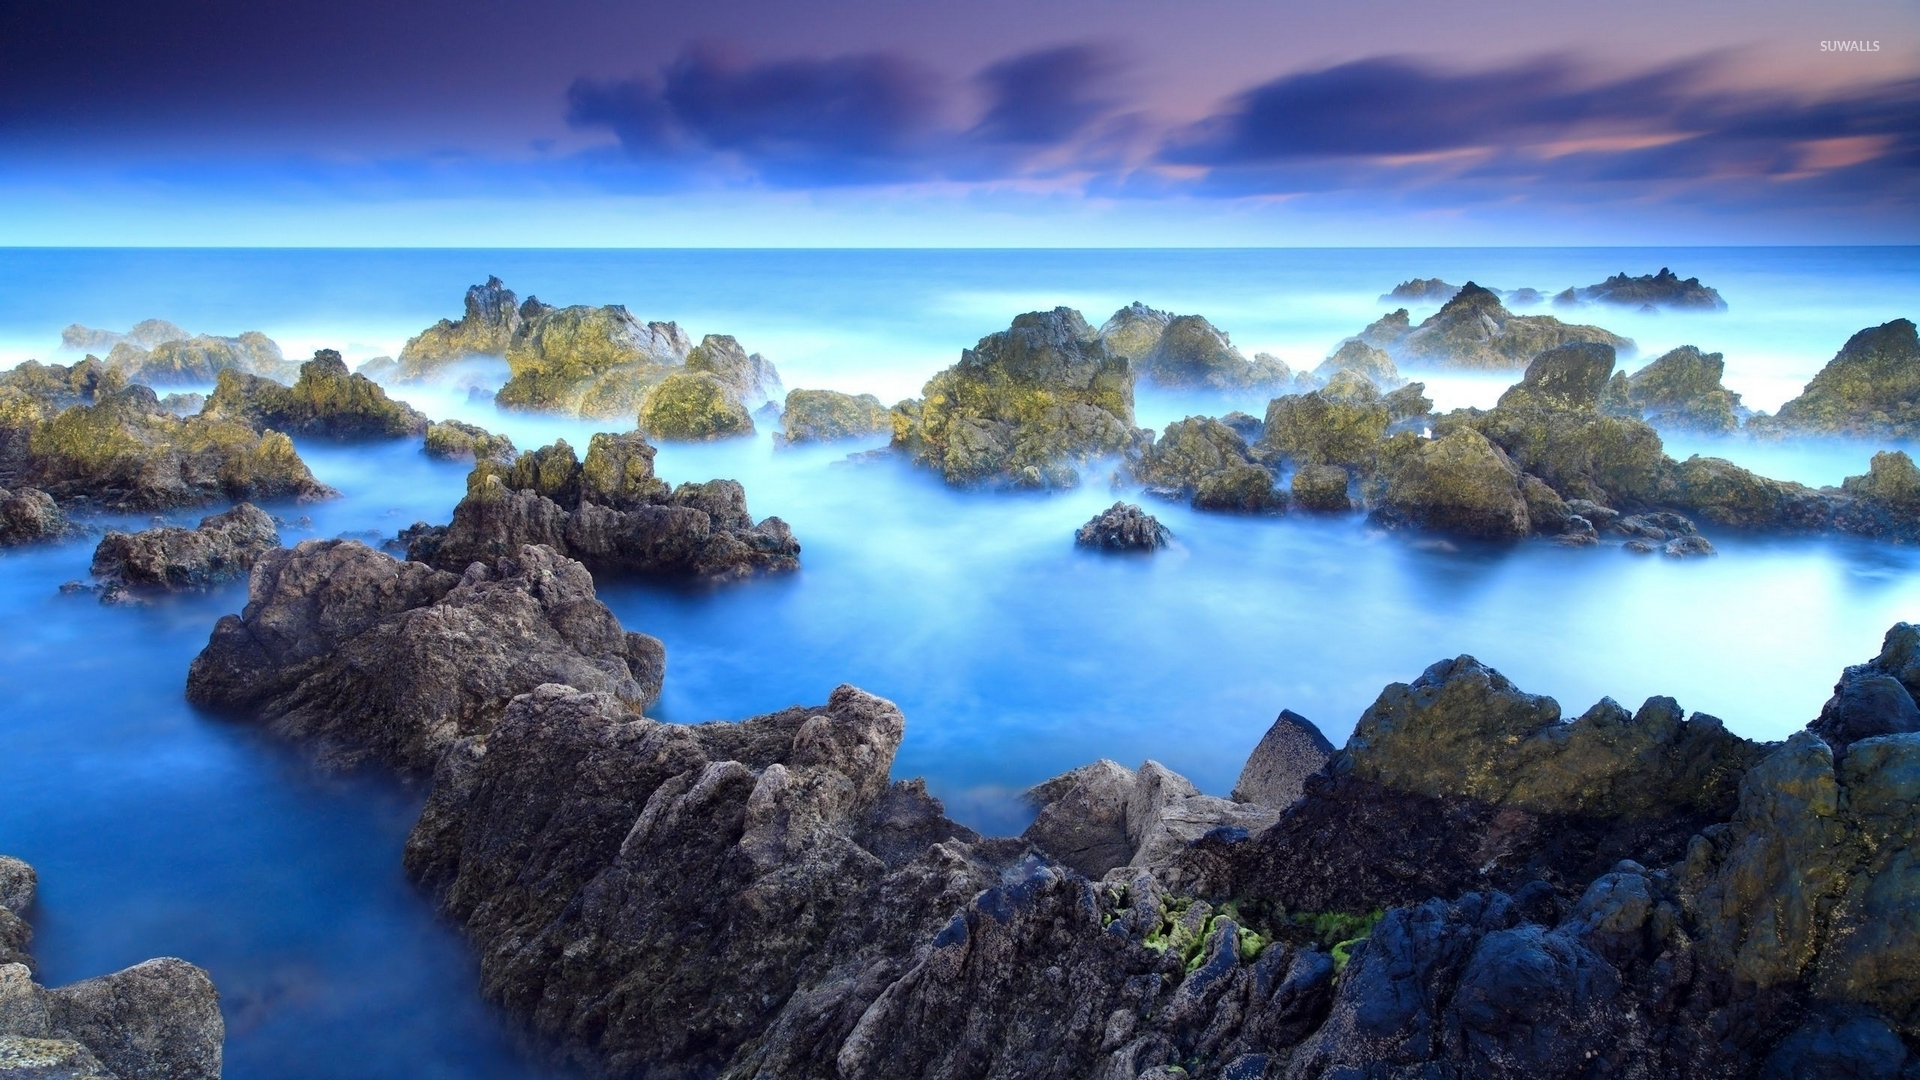 3d Beach Wallpaper For Walls Mossy Rocks Rising From The Amazing Blue Ocean Wallpaper